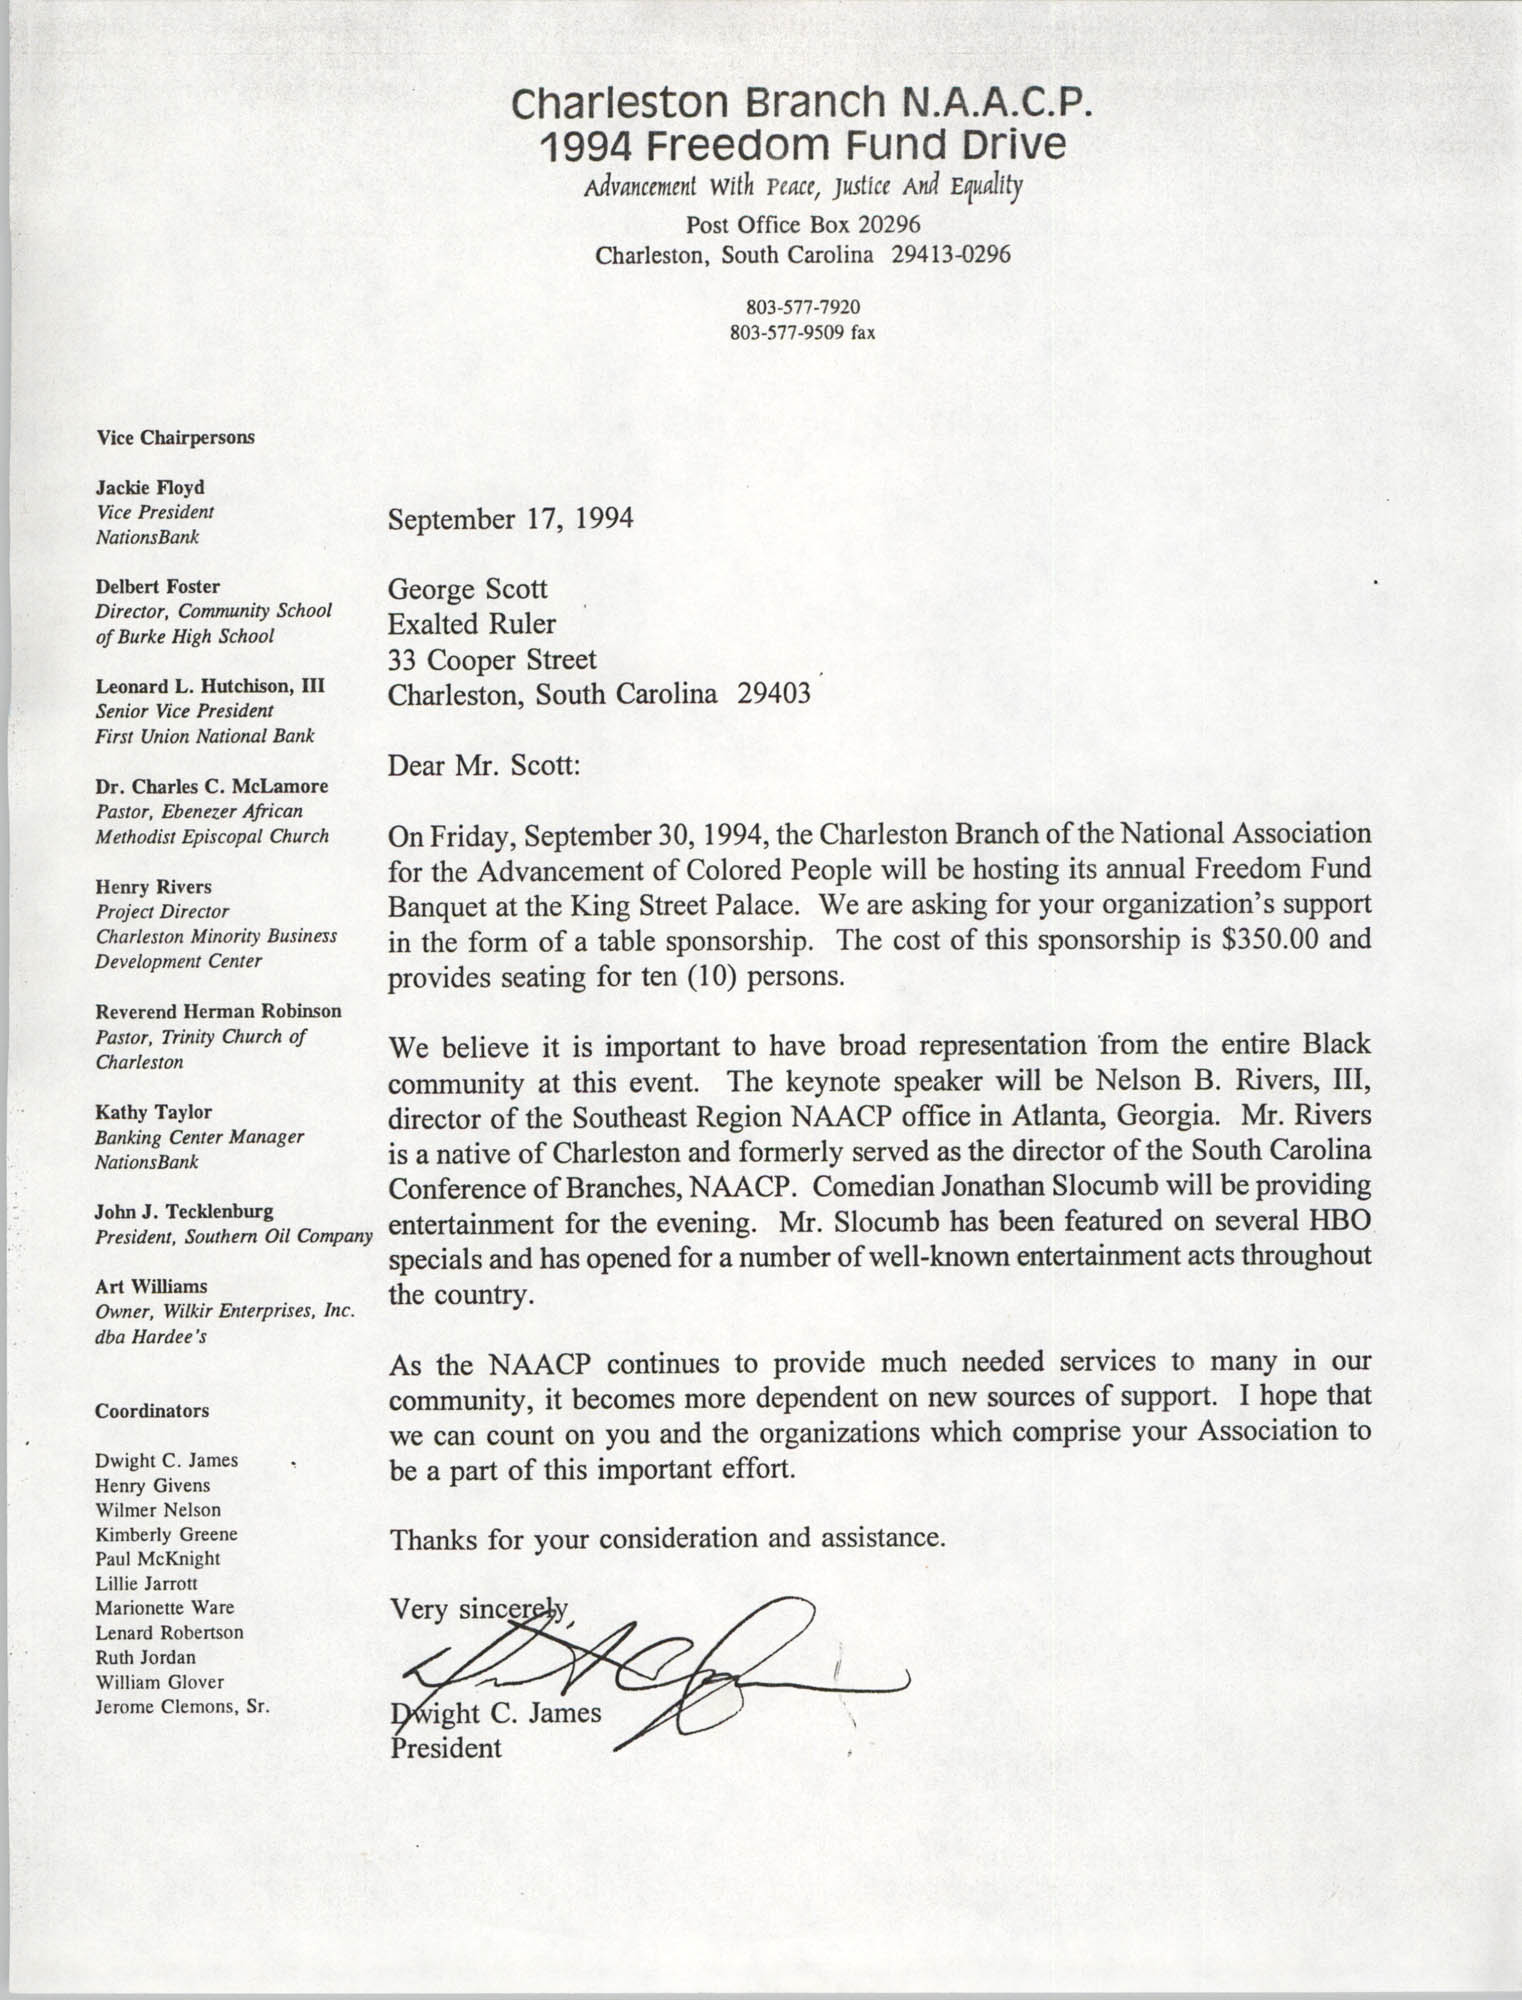 Letter from Dwight C. James to George Scott, September 17, 1994